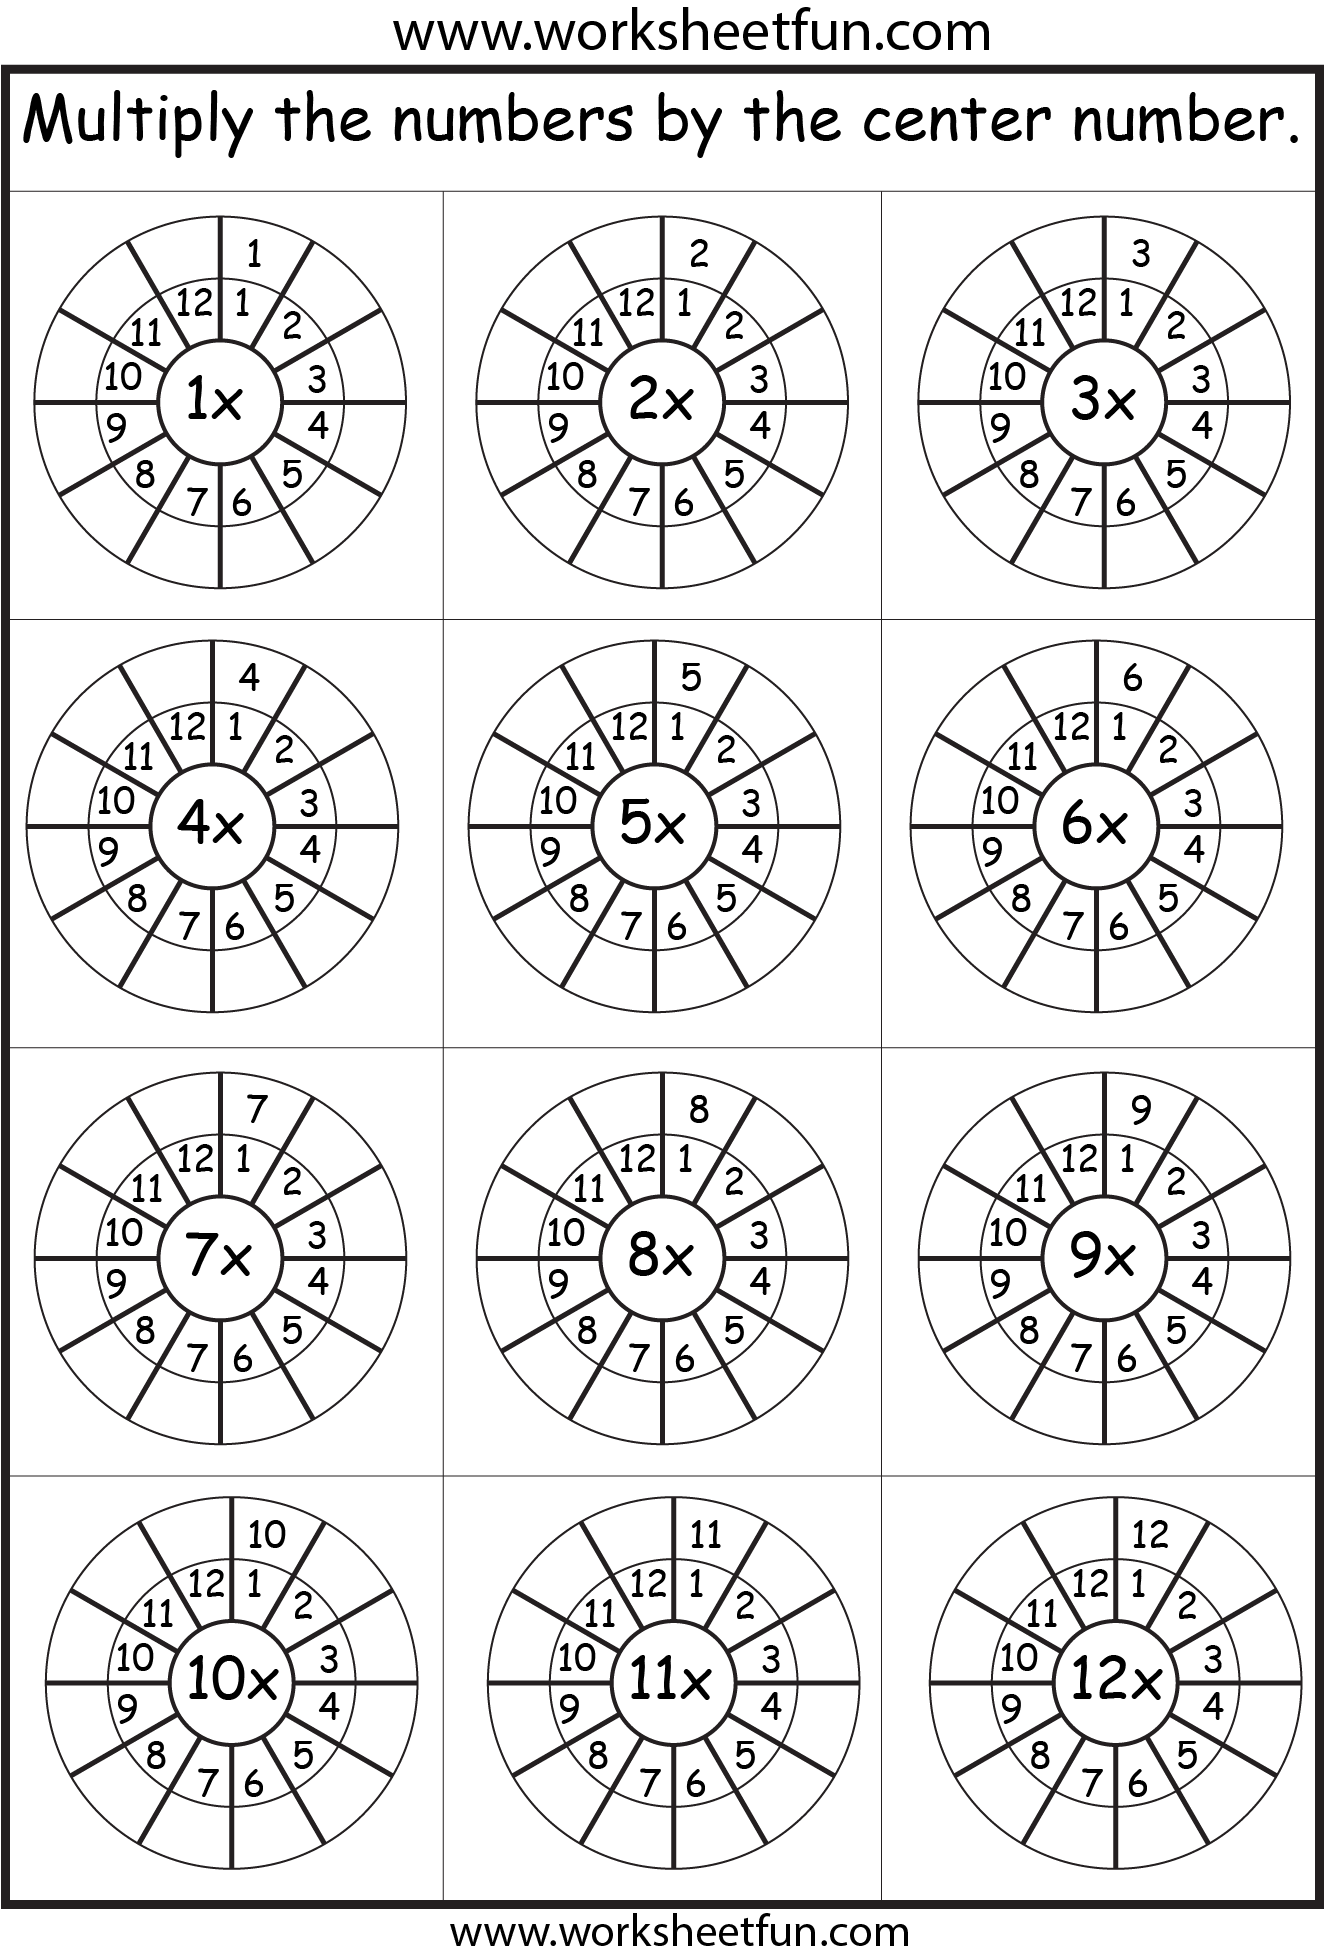 Times Table 212 Worksheets 1 2 3 4 5 6 7 8 9 10 11 – Multiplication Tables 1-12 Printable Worksheets